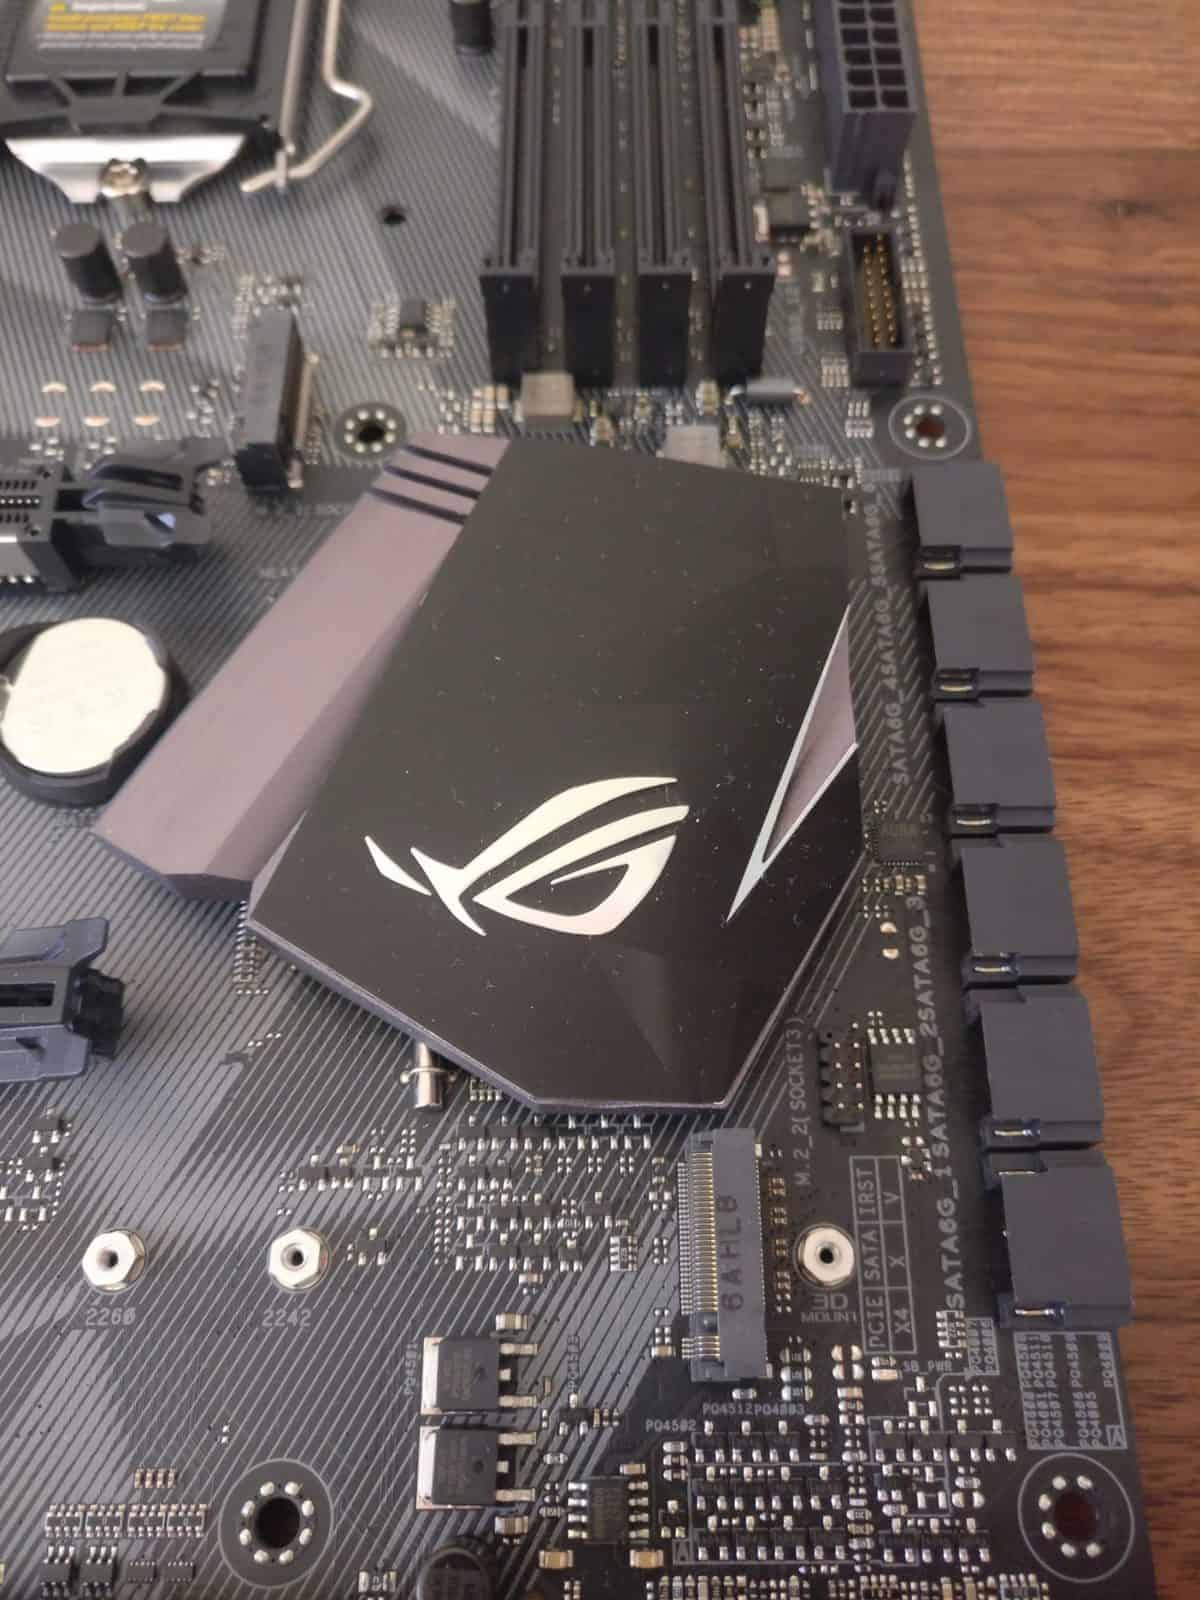 Asus-Strix-Motherboard-Photos-39 Asus Strix H270F ROG Gaming Motherboard Review